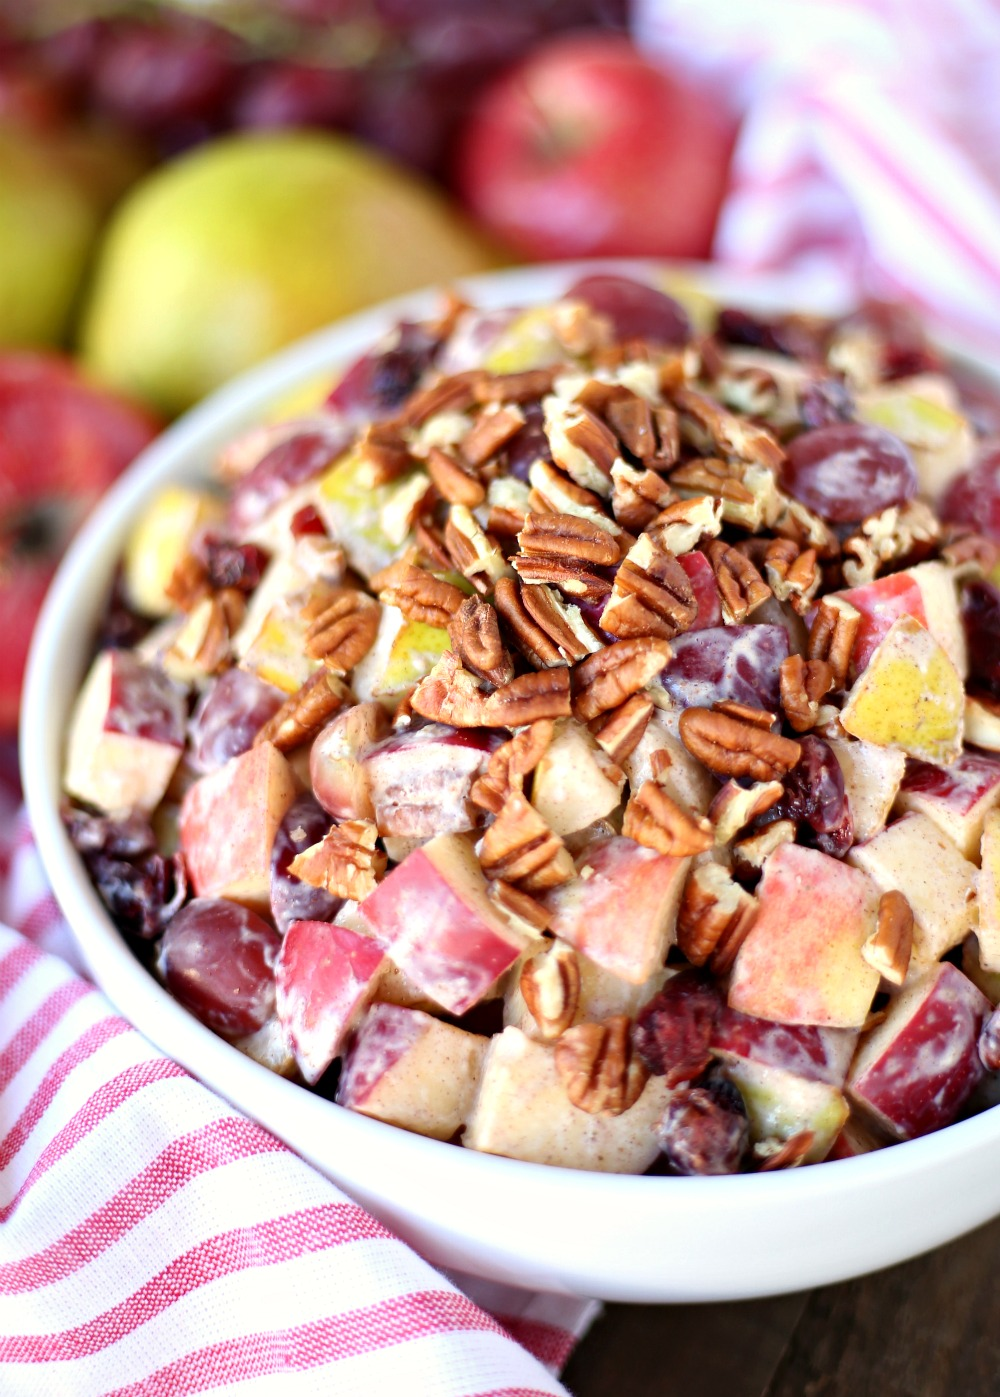 Autumn Fruit Salad with Apples, Pears, and Grapes